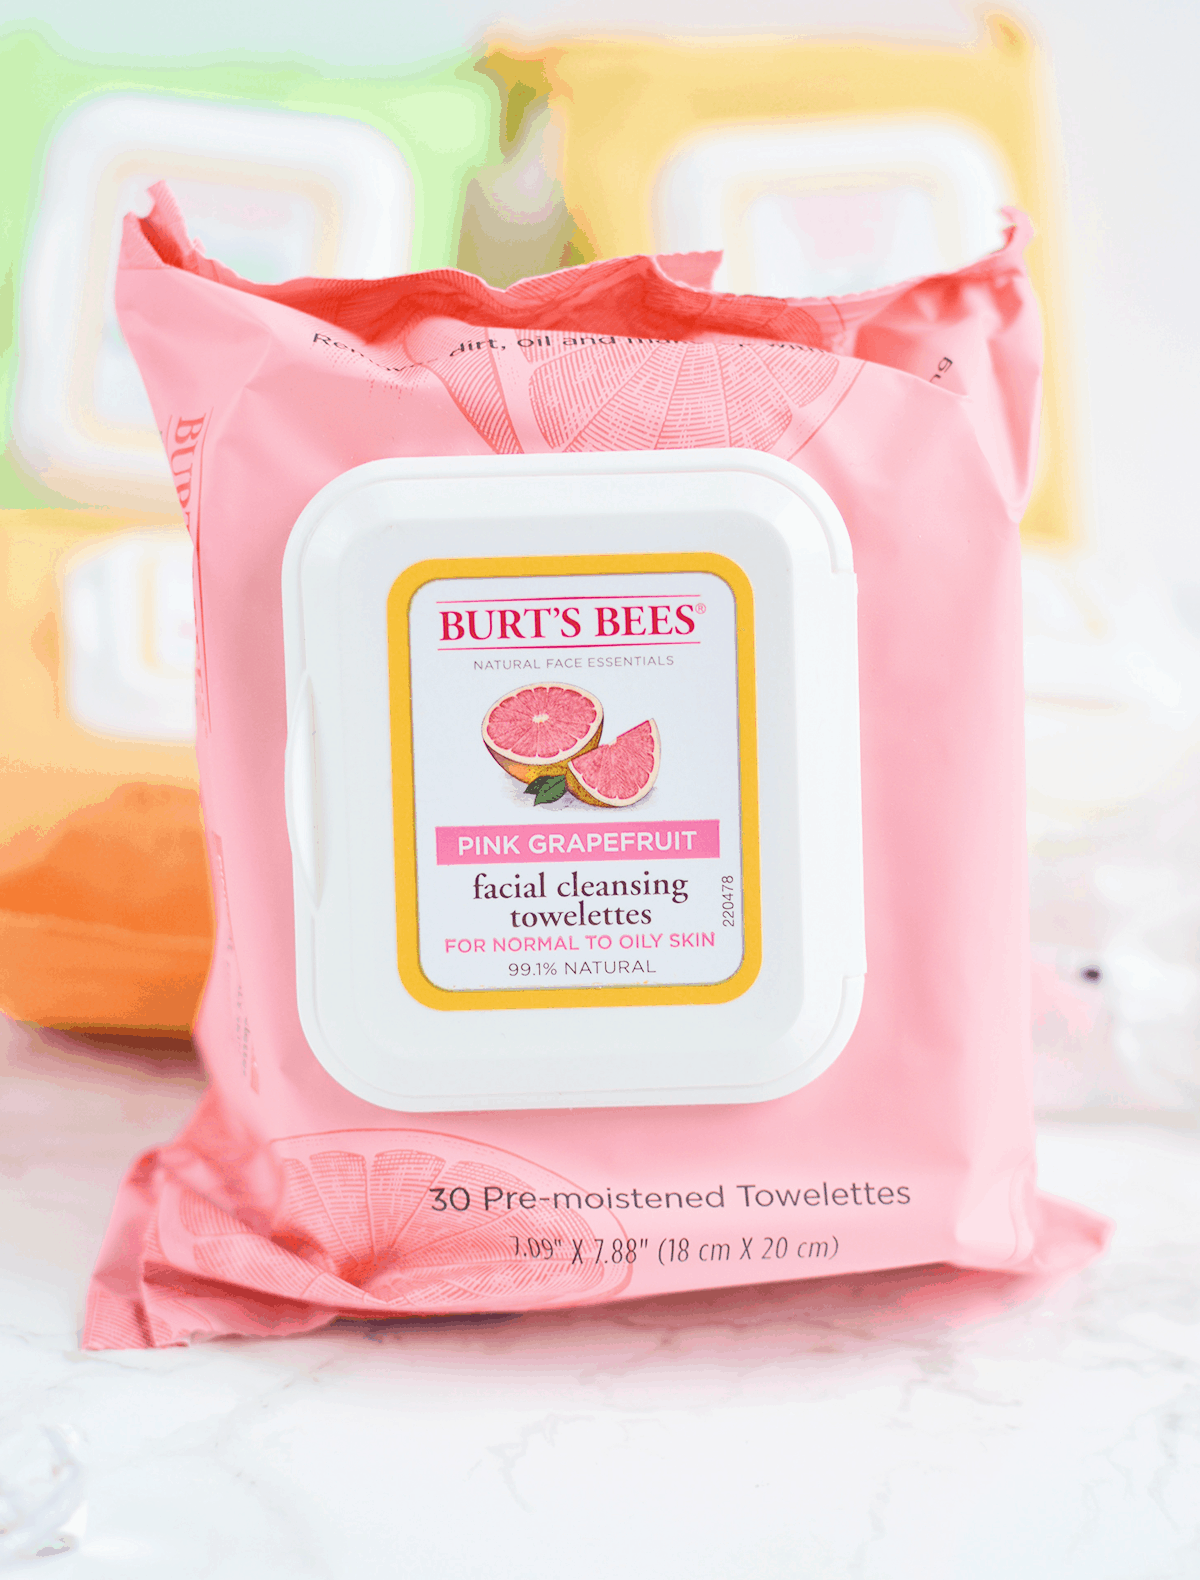 Burt's Bees Pink Grapefruit Facial Wipes are perfect for oily skin! #NaturesSolutions AD | oliveandivyblog.com